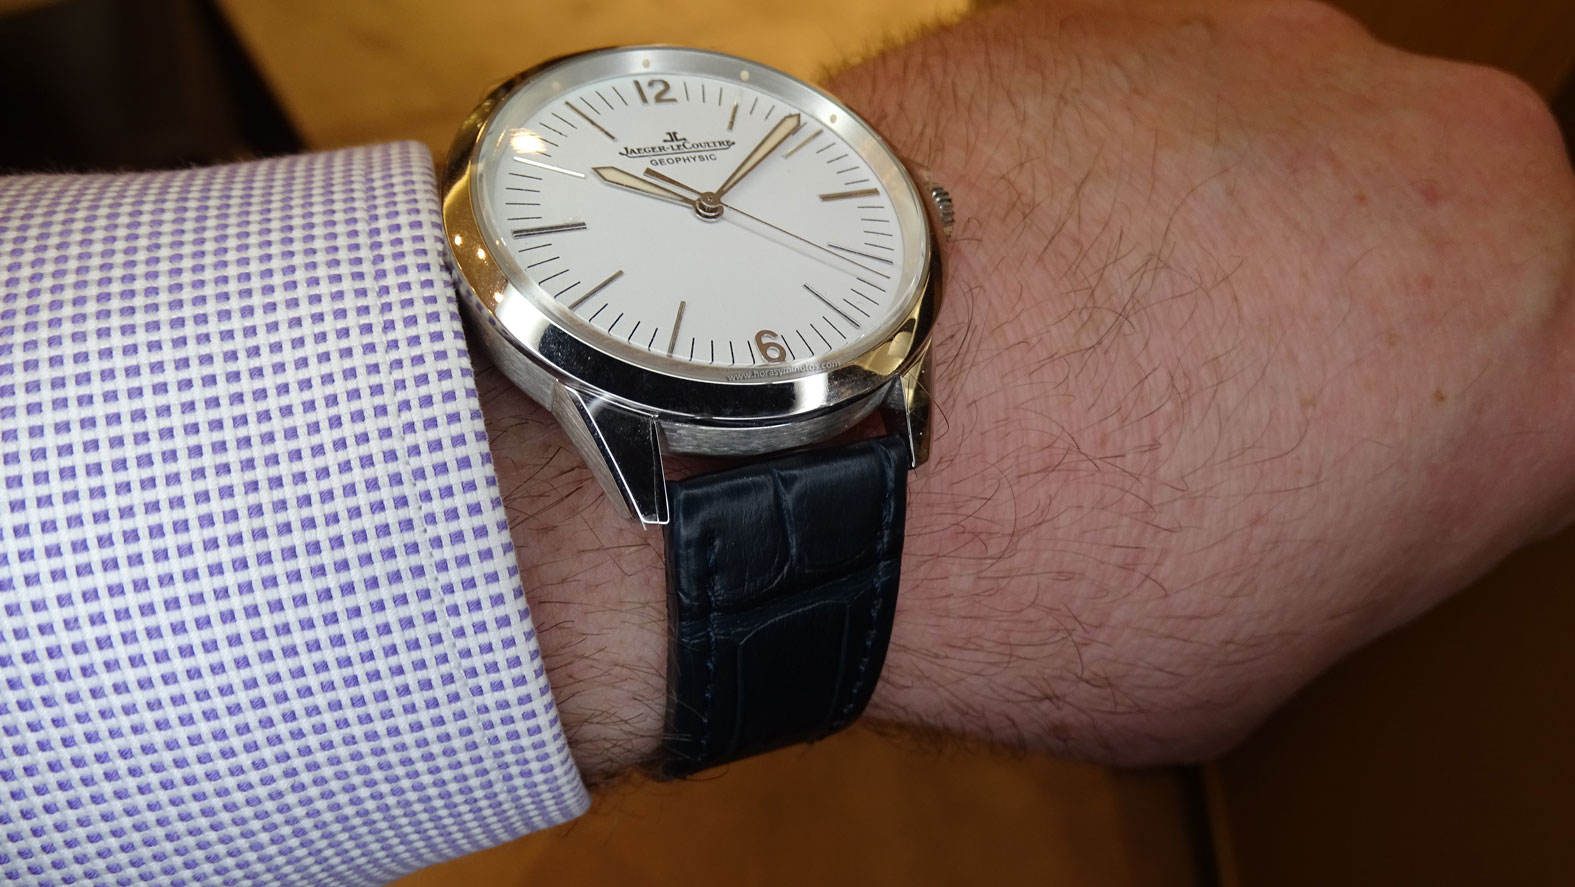 Jaeger-LeCoultre Geophysic platino perfil